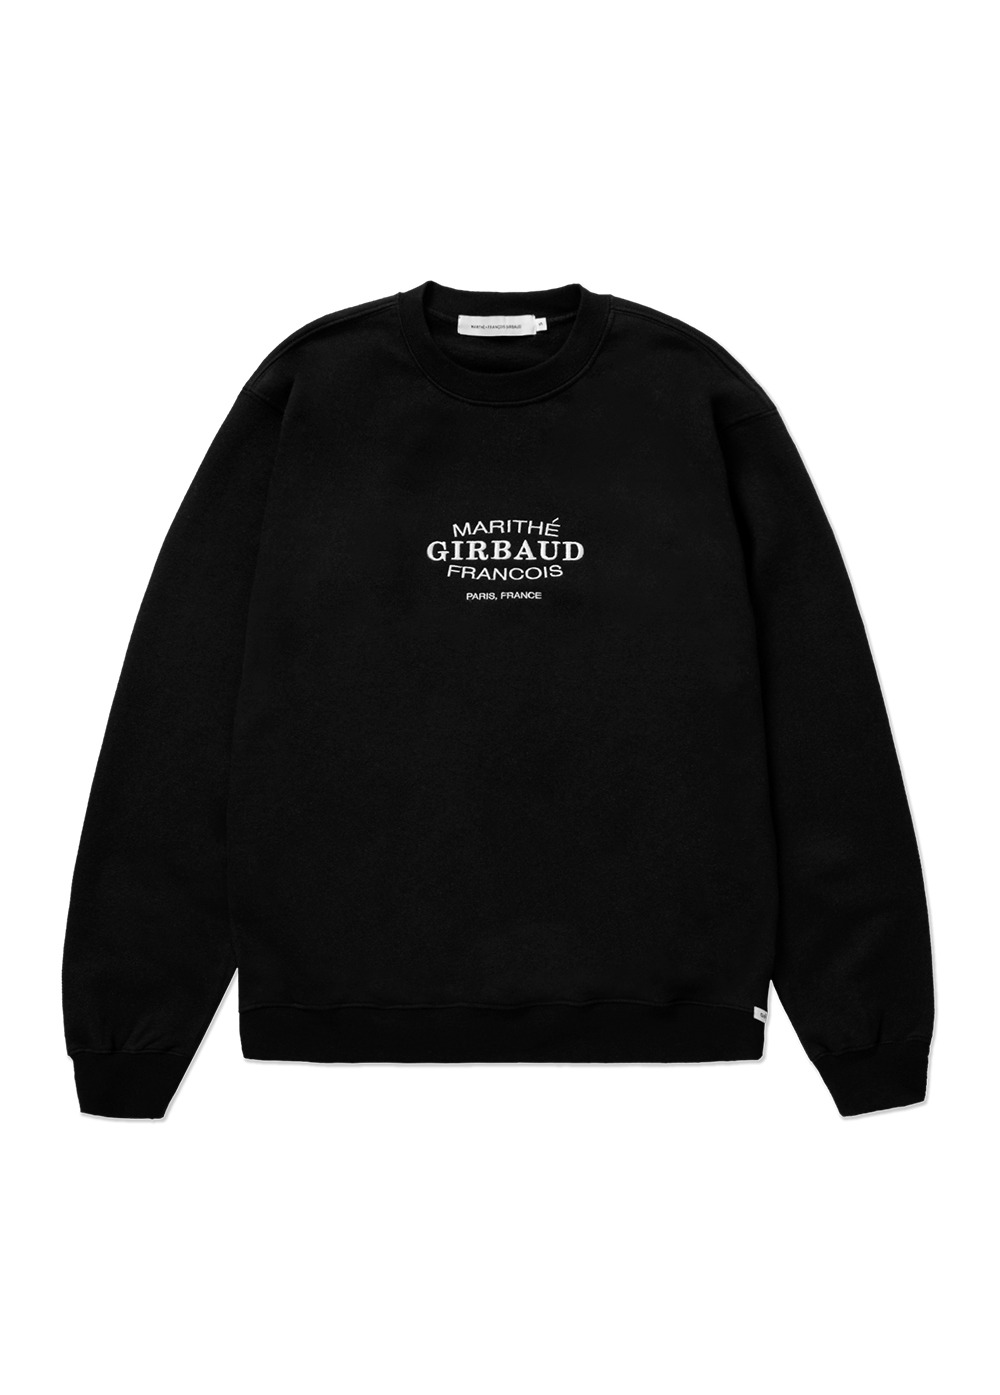 MFG OVAL LOGO SWEATSHIRT black